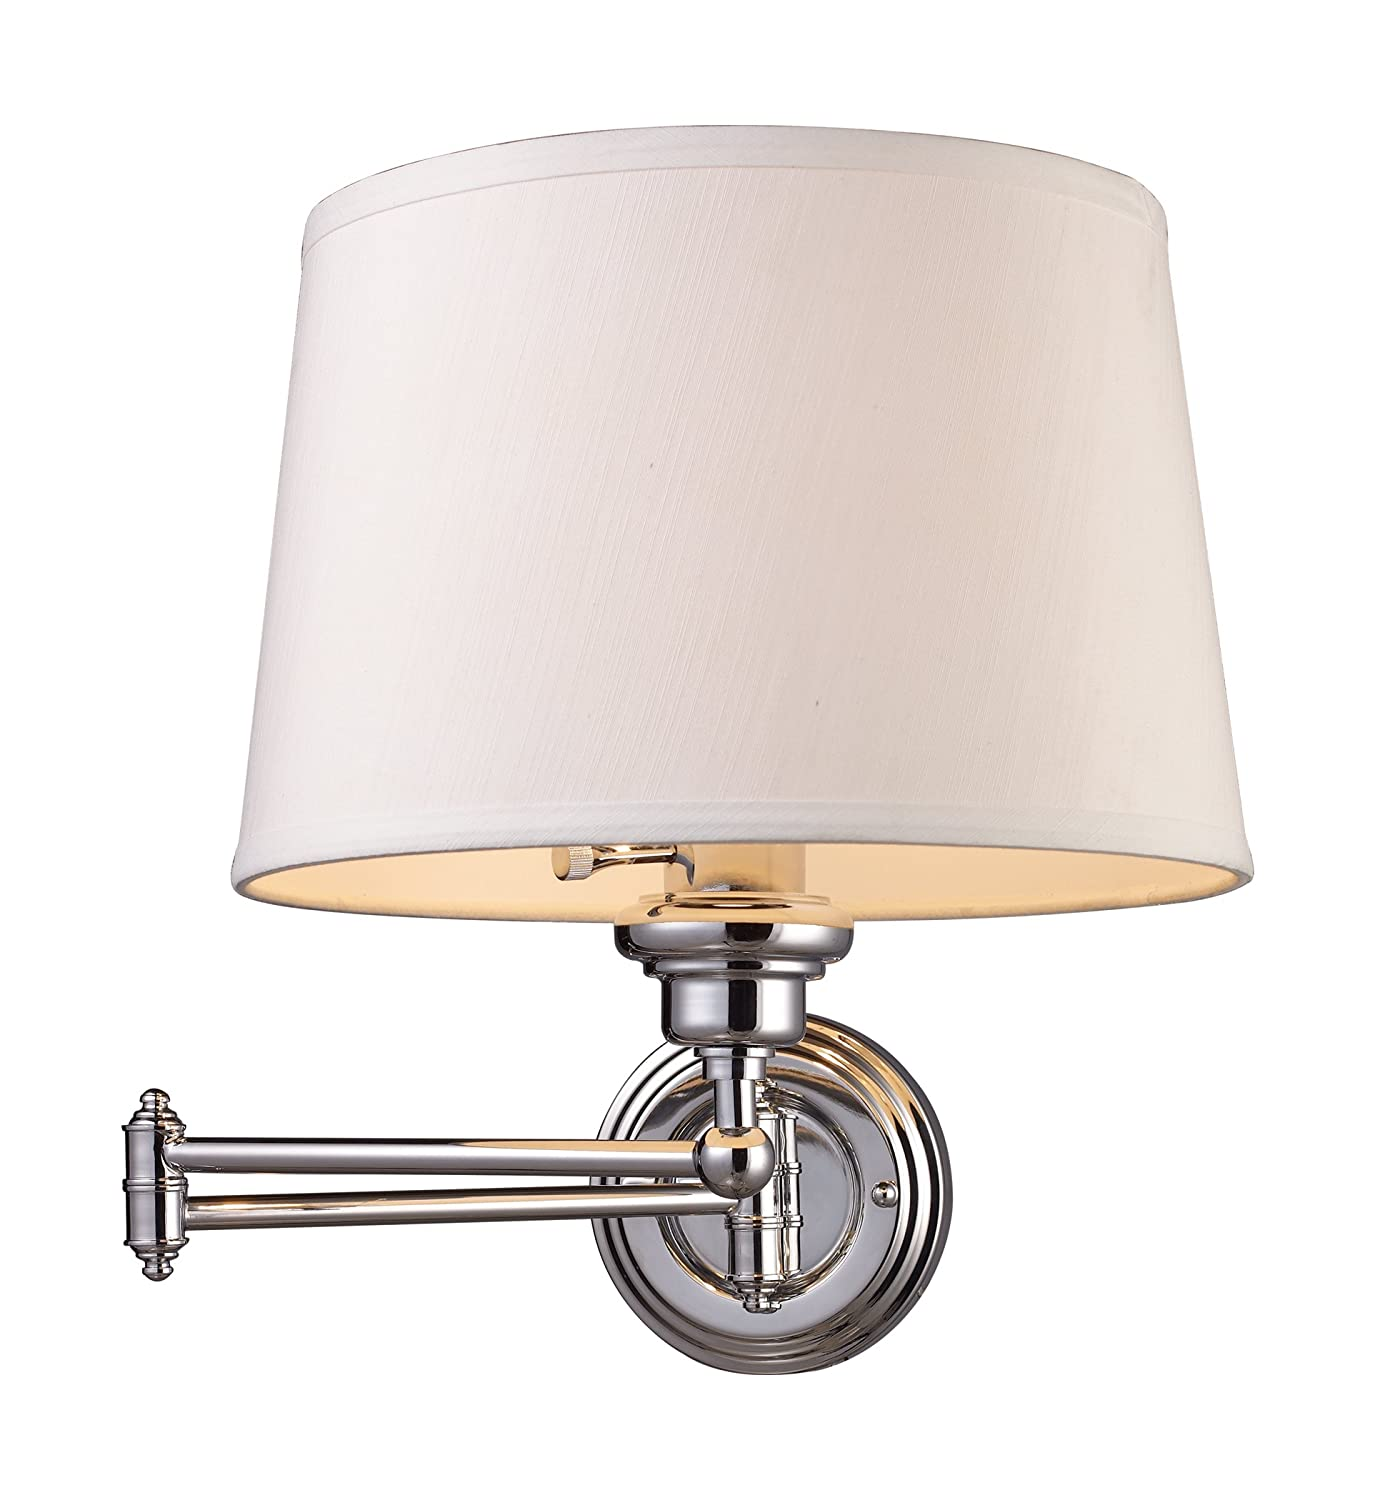 Elk 112101 westbrook 1 light swing arm sconce in polished chrome elk 112101 westbrook 1 light swing arm sconce in polished chrome wall sconces amazon amipublicfo Image collections